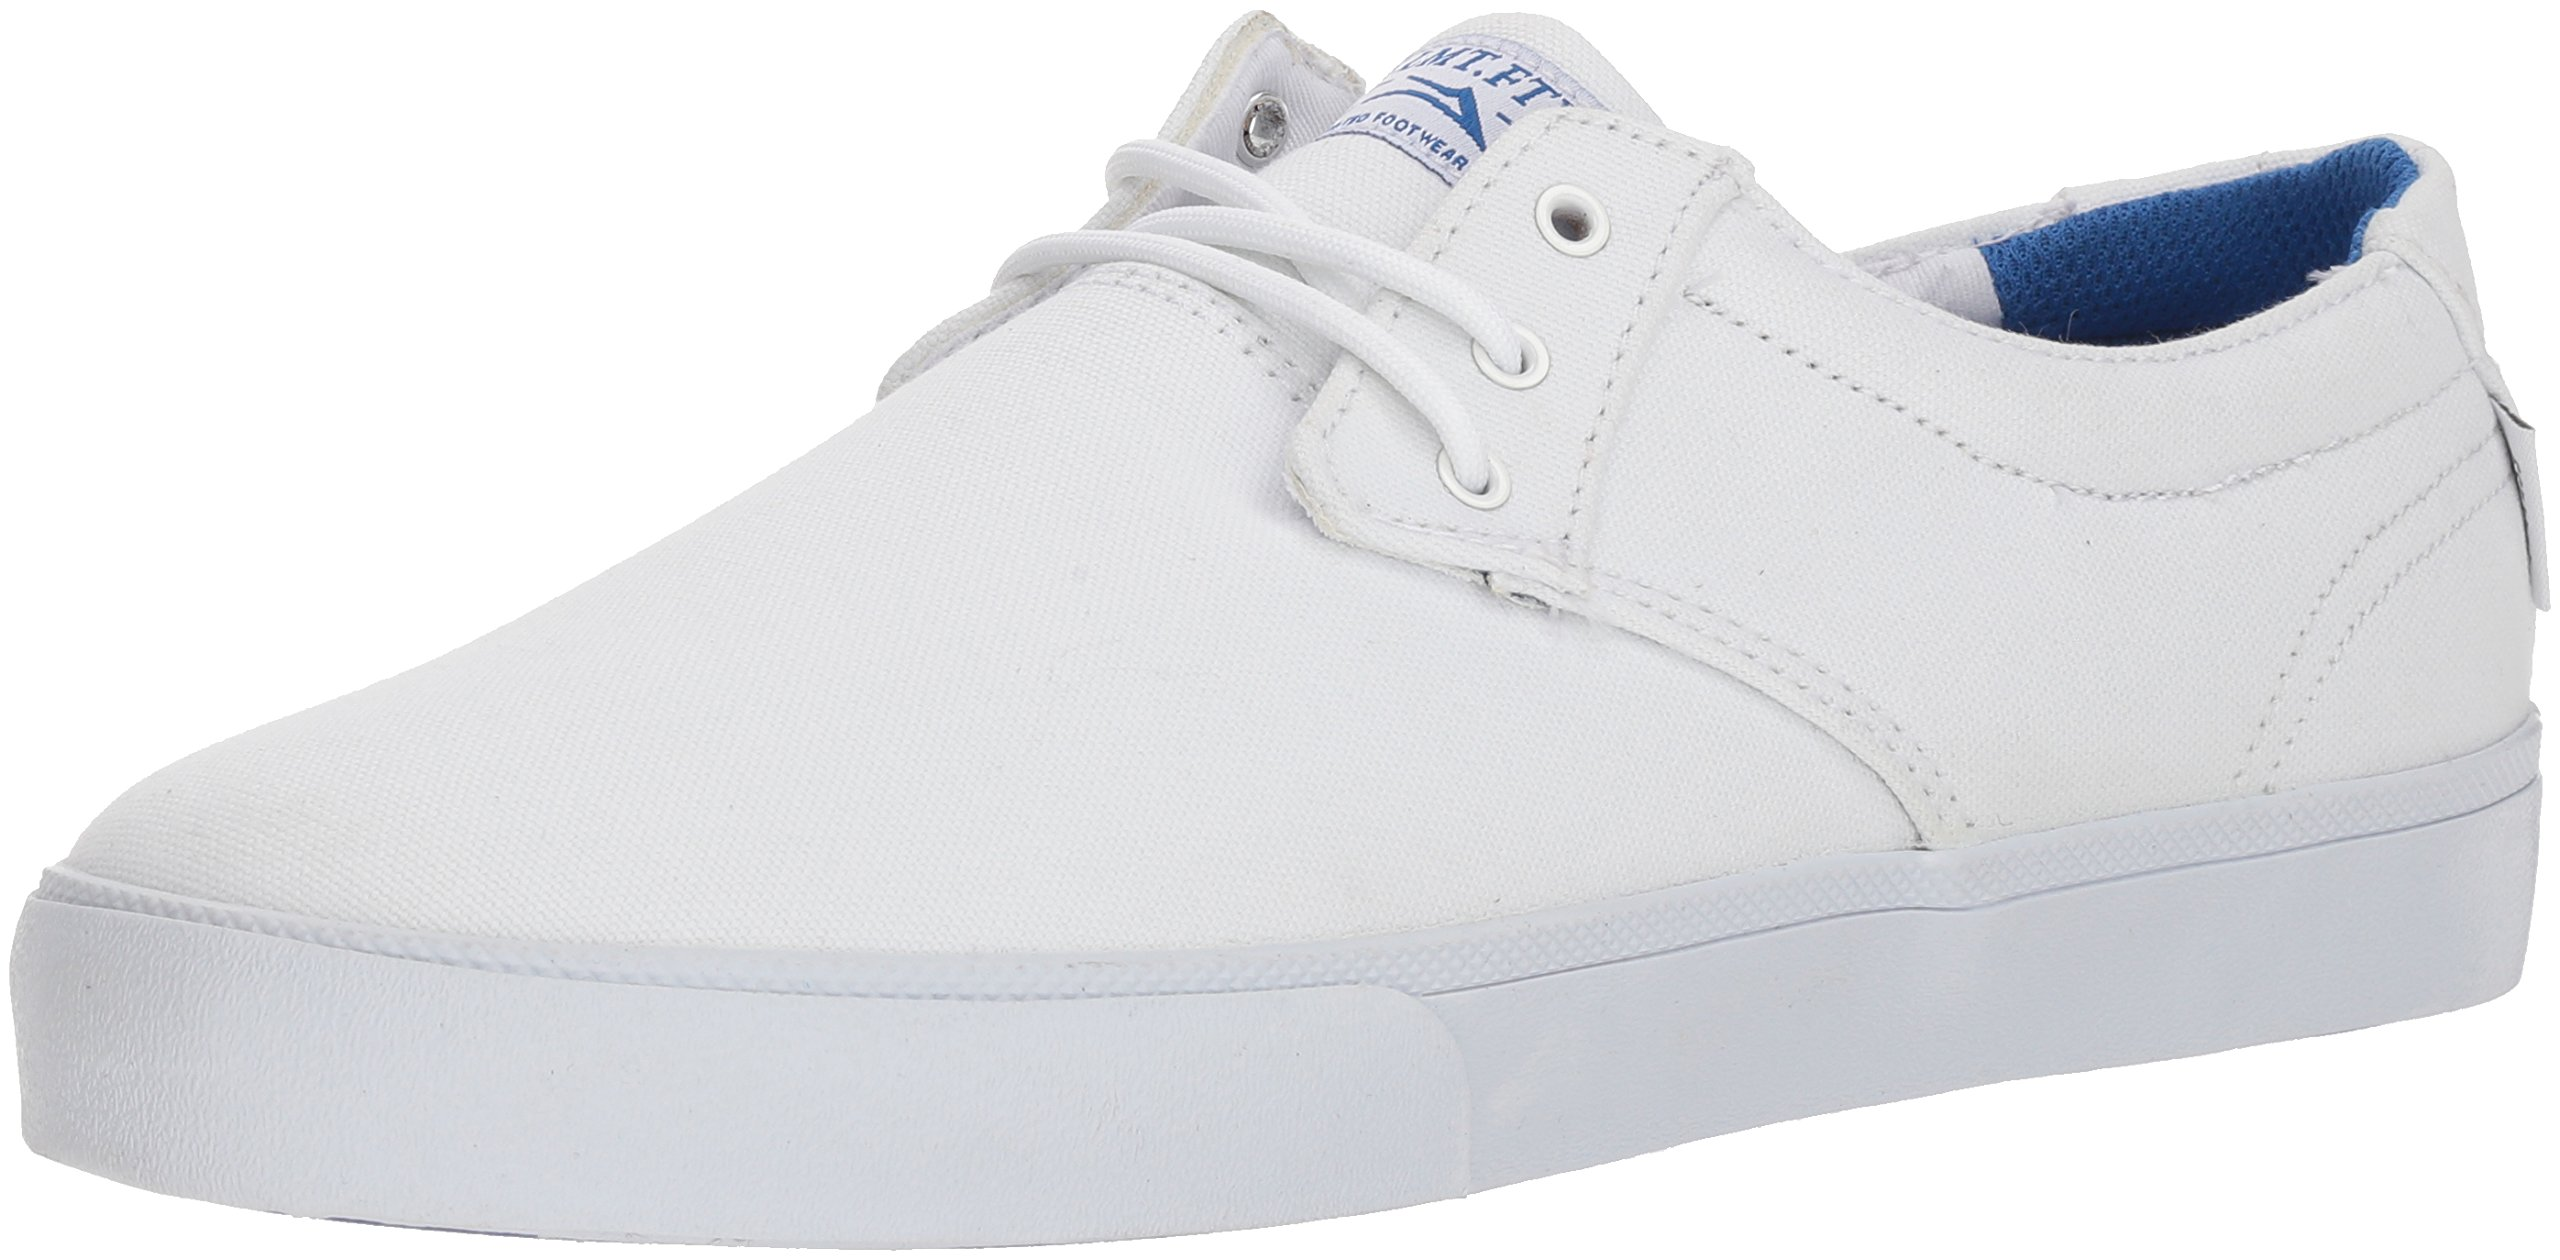 Lakai Limited Footwear Mens Daly, White Canvas, 11 Medium US